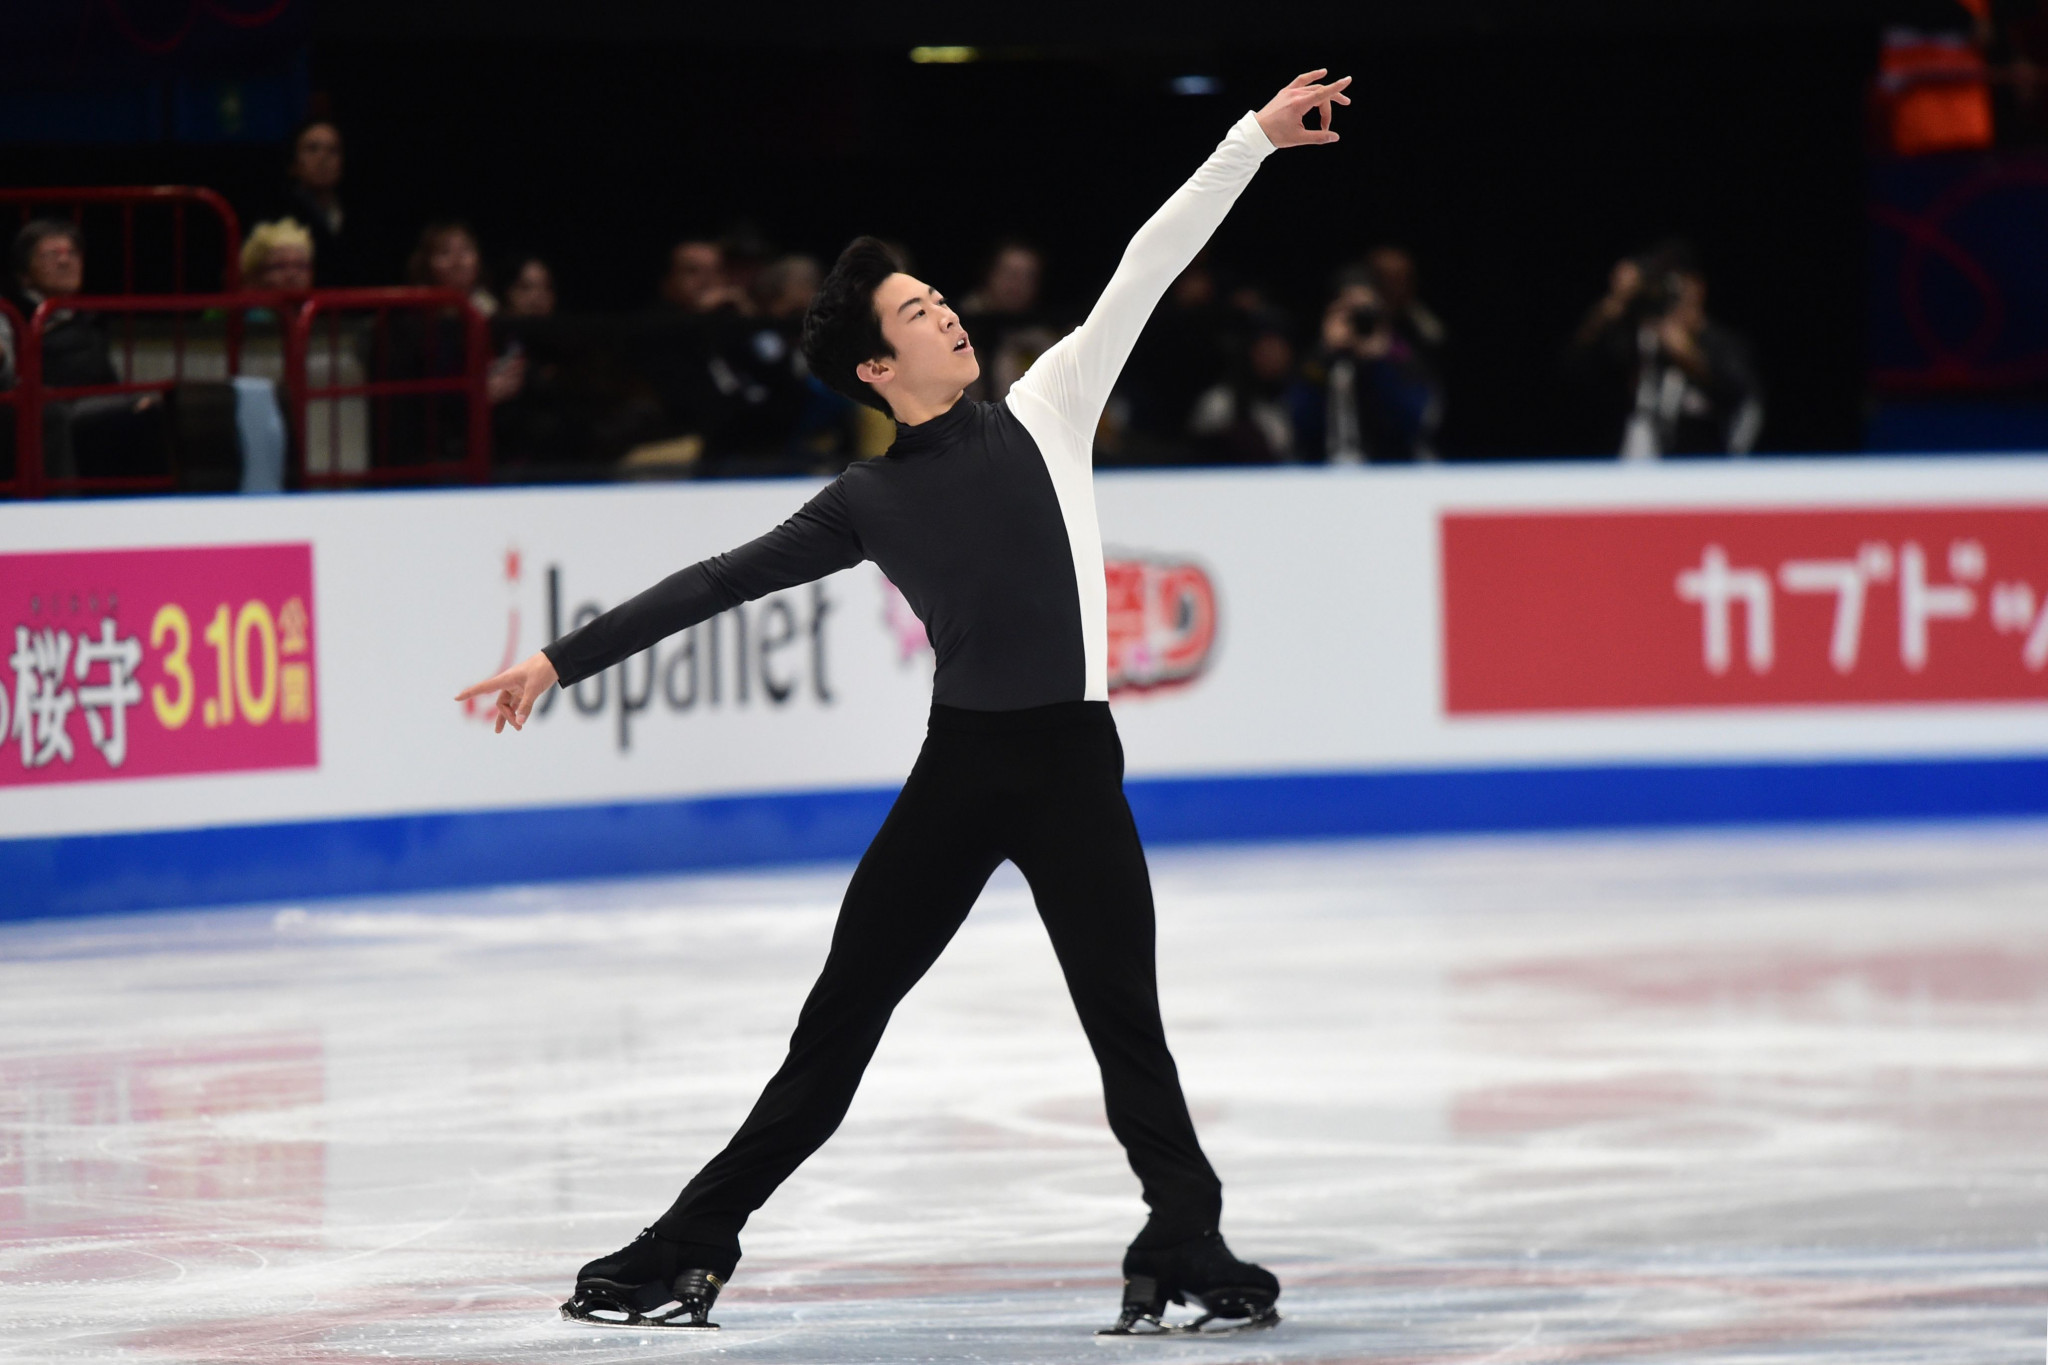 Chen heads United States hopes at opening ISU Grand Prix of Figure Skating event of season in Washington